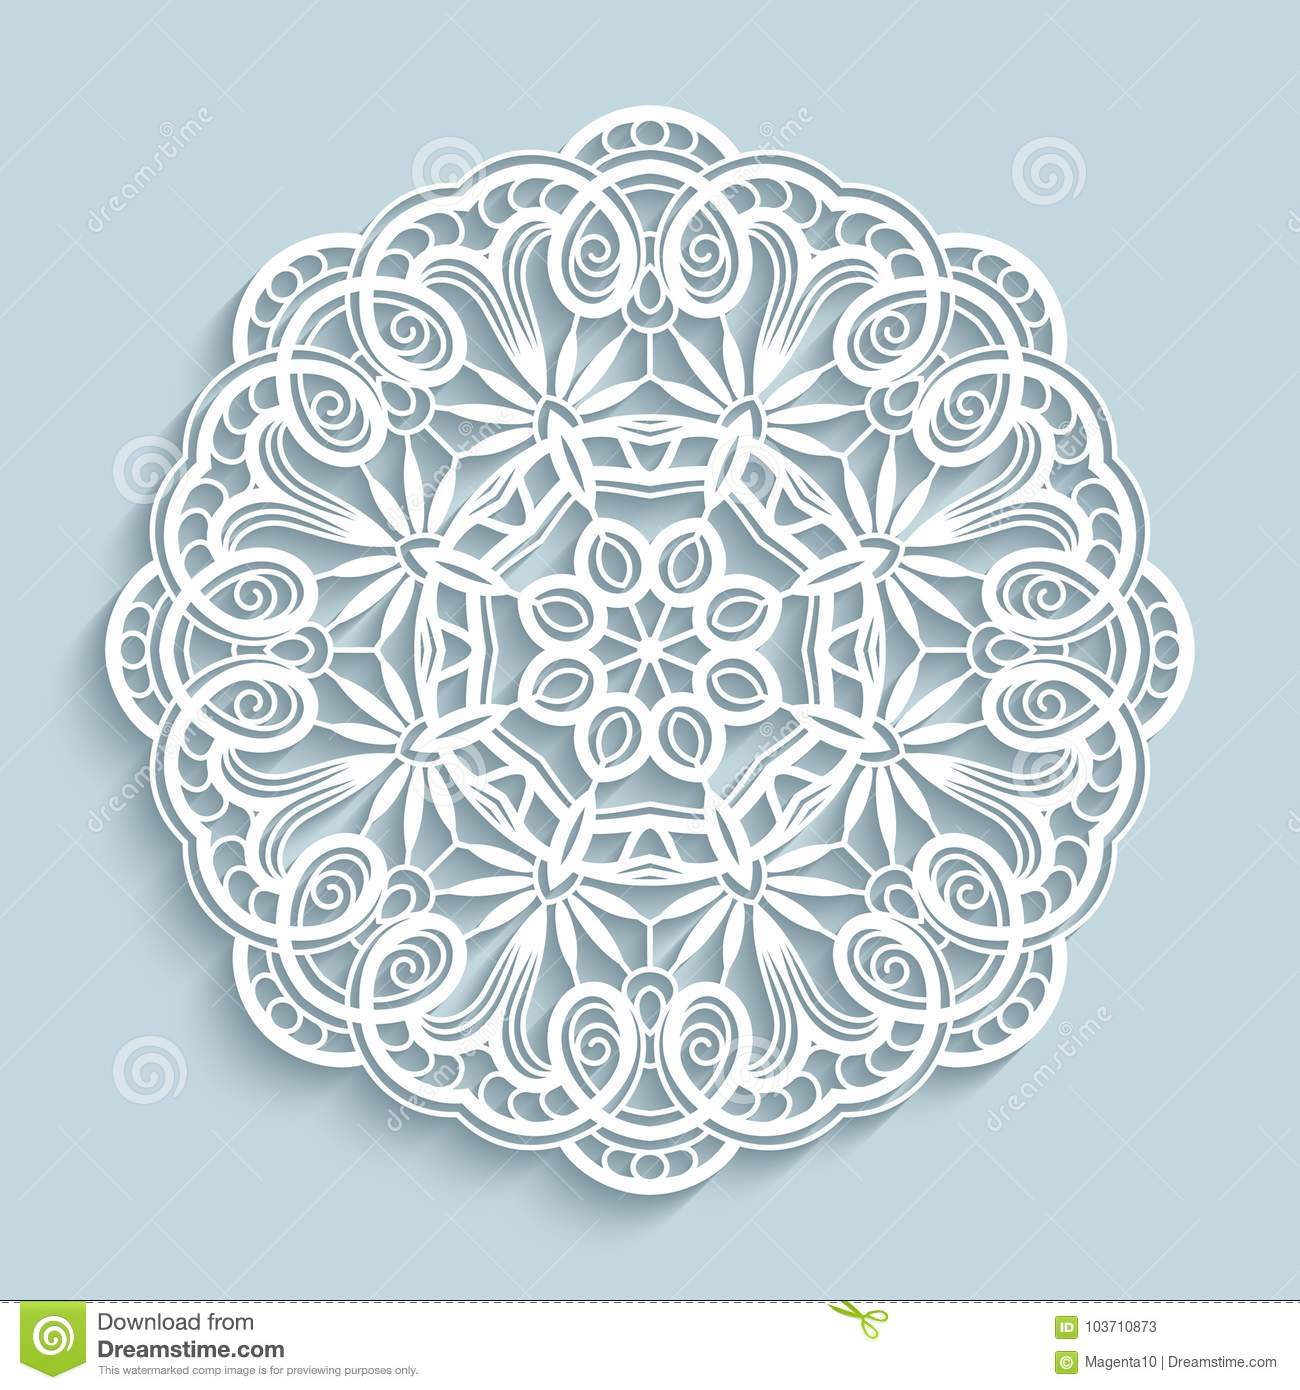 Paper Lace Doily Cutout Round Pattern Stock Vector Illustration